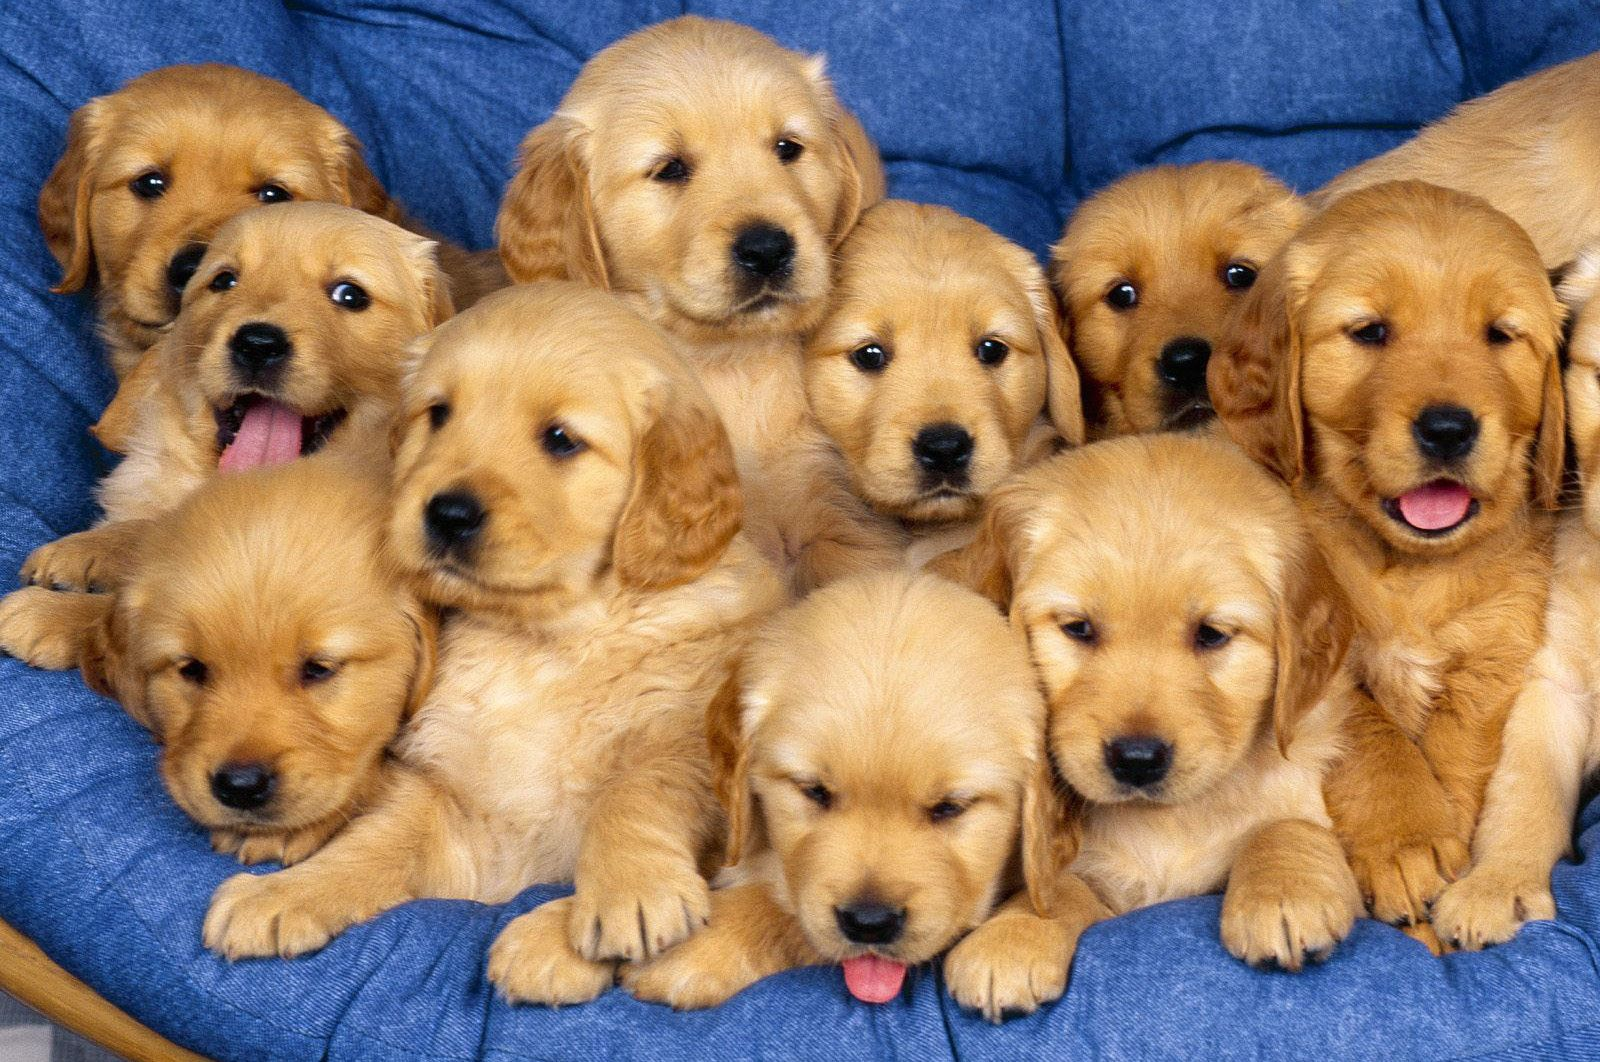 Cute-Dogs-And-Puppies-wallpaper-wpc5803832